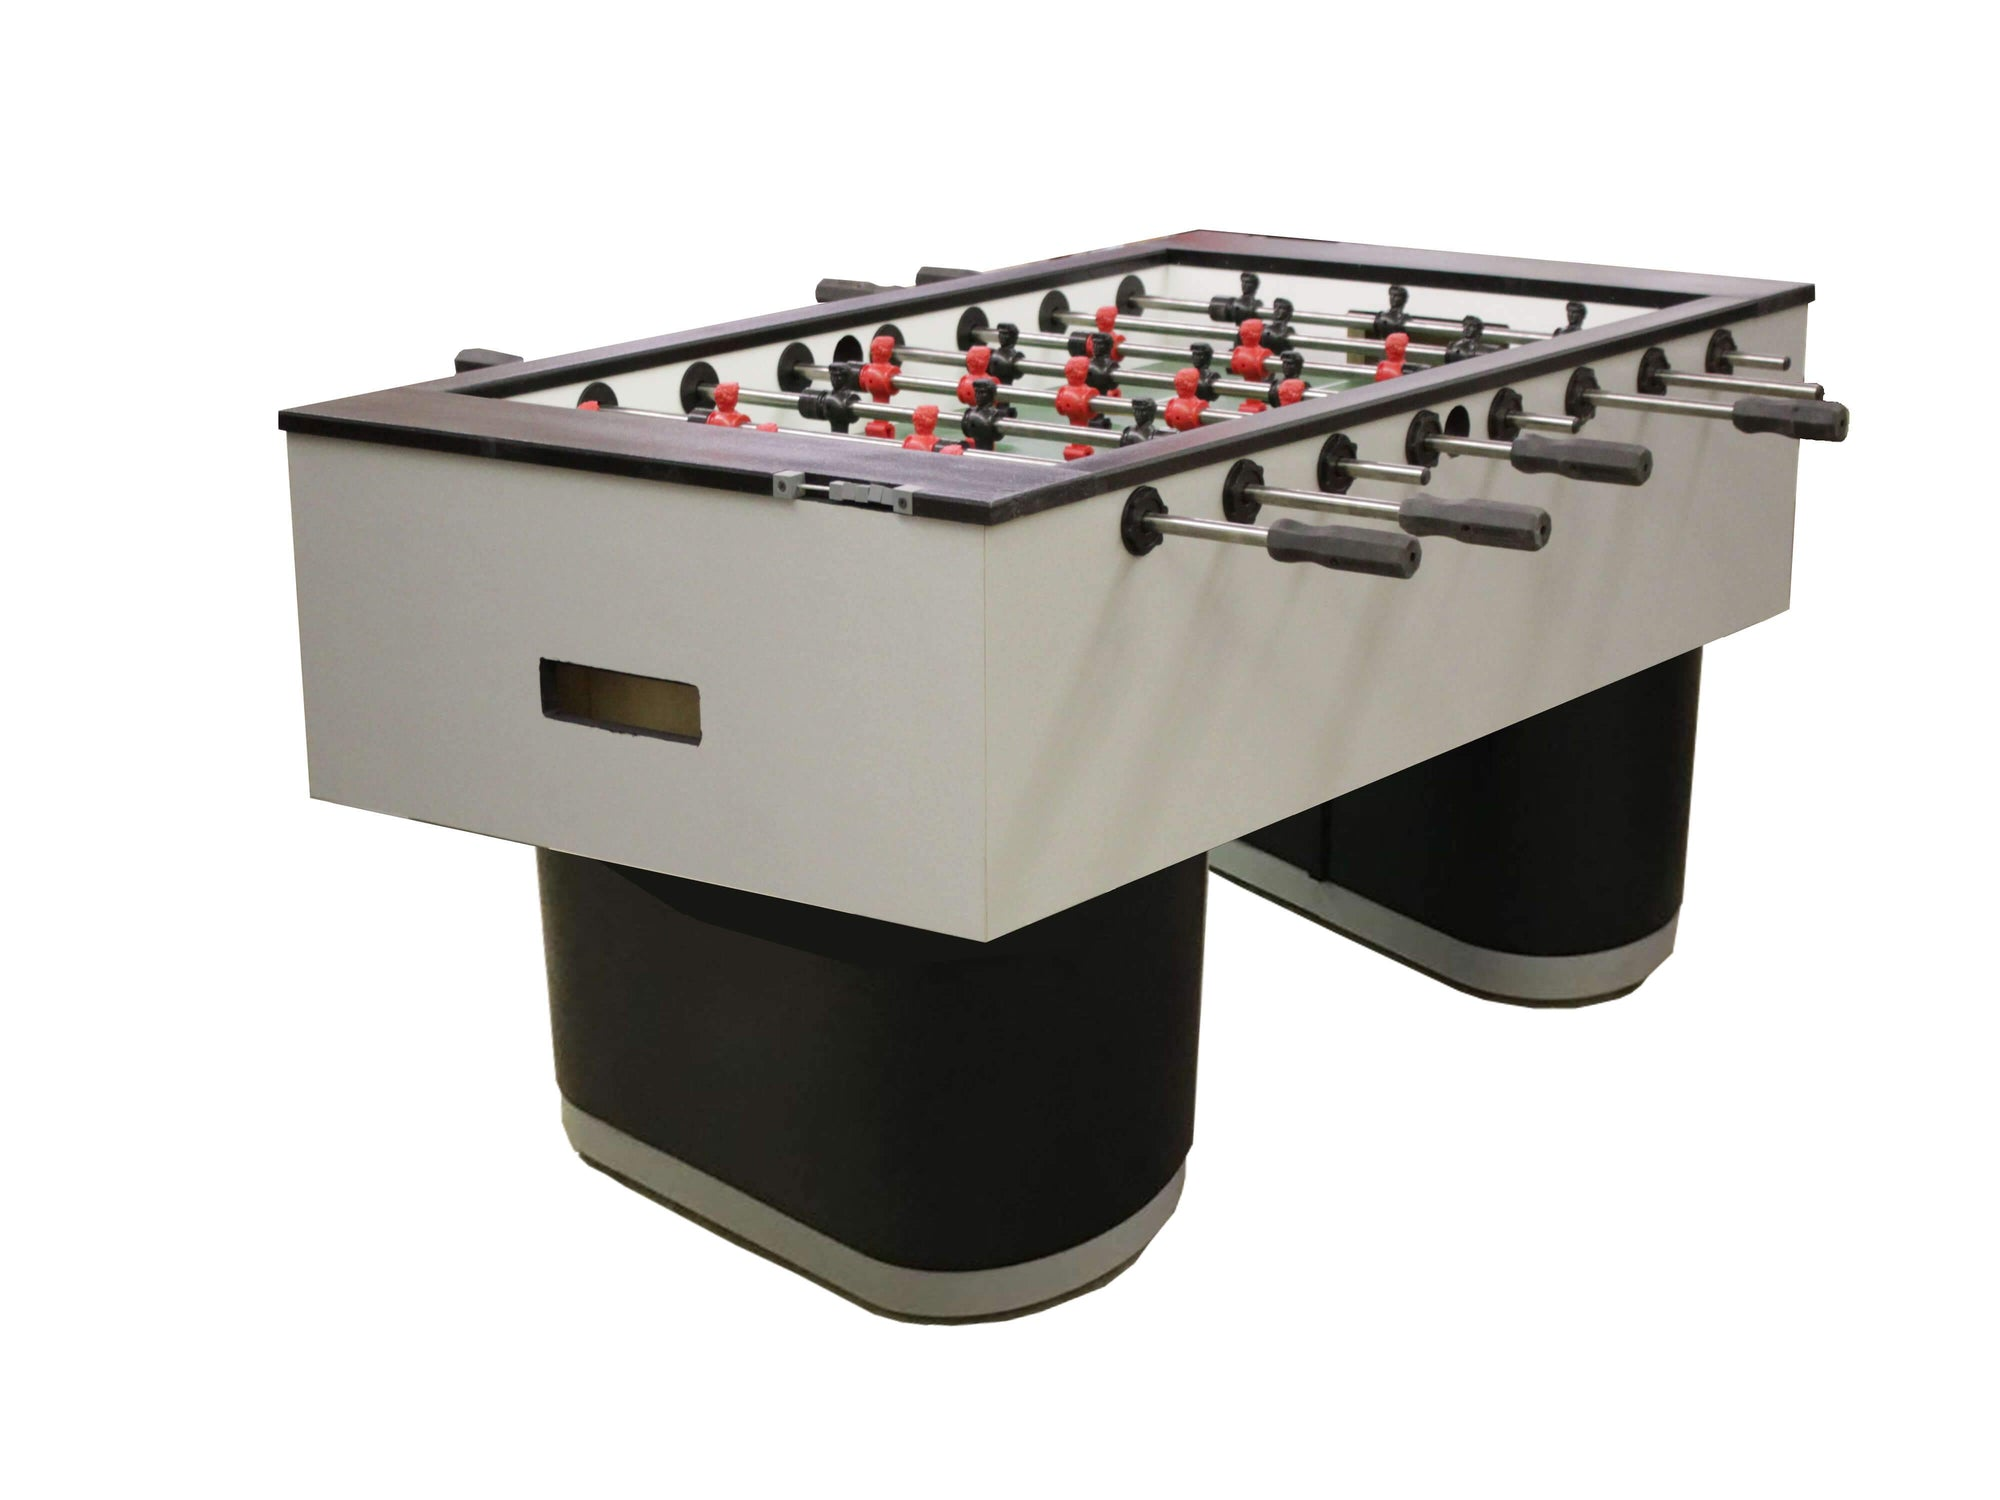 "Performance Games Sure Shot IS Tubular Black Legs Foosball Table 56"" - Gaming Blaze"